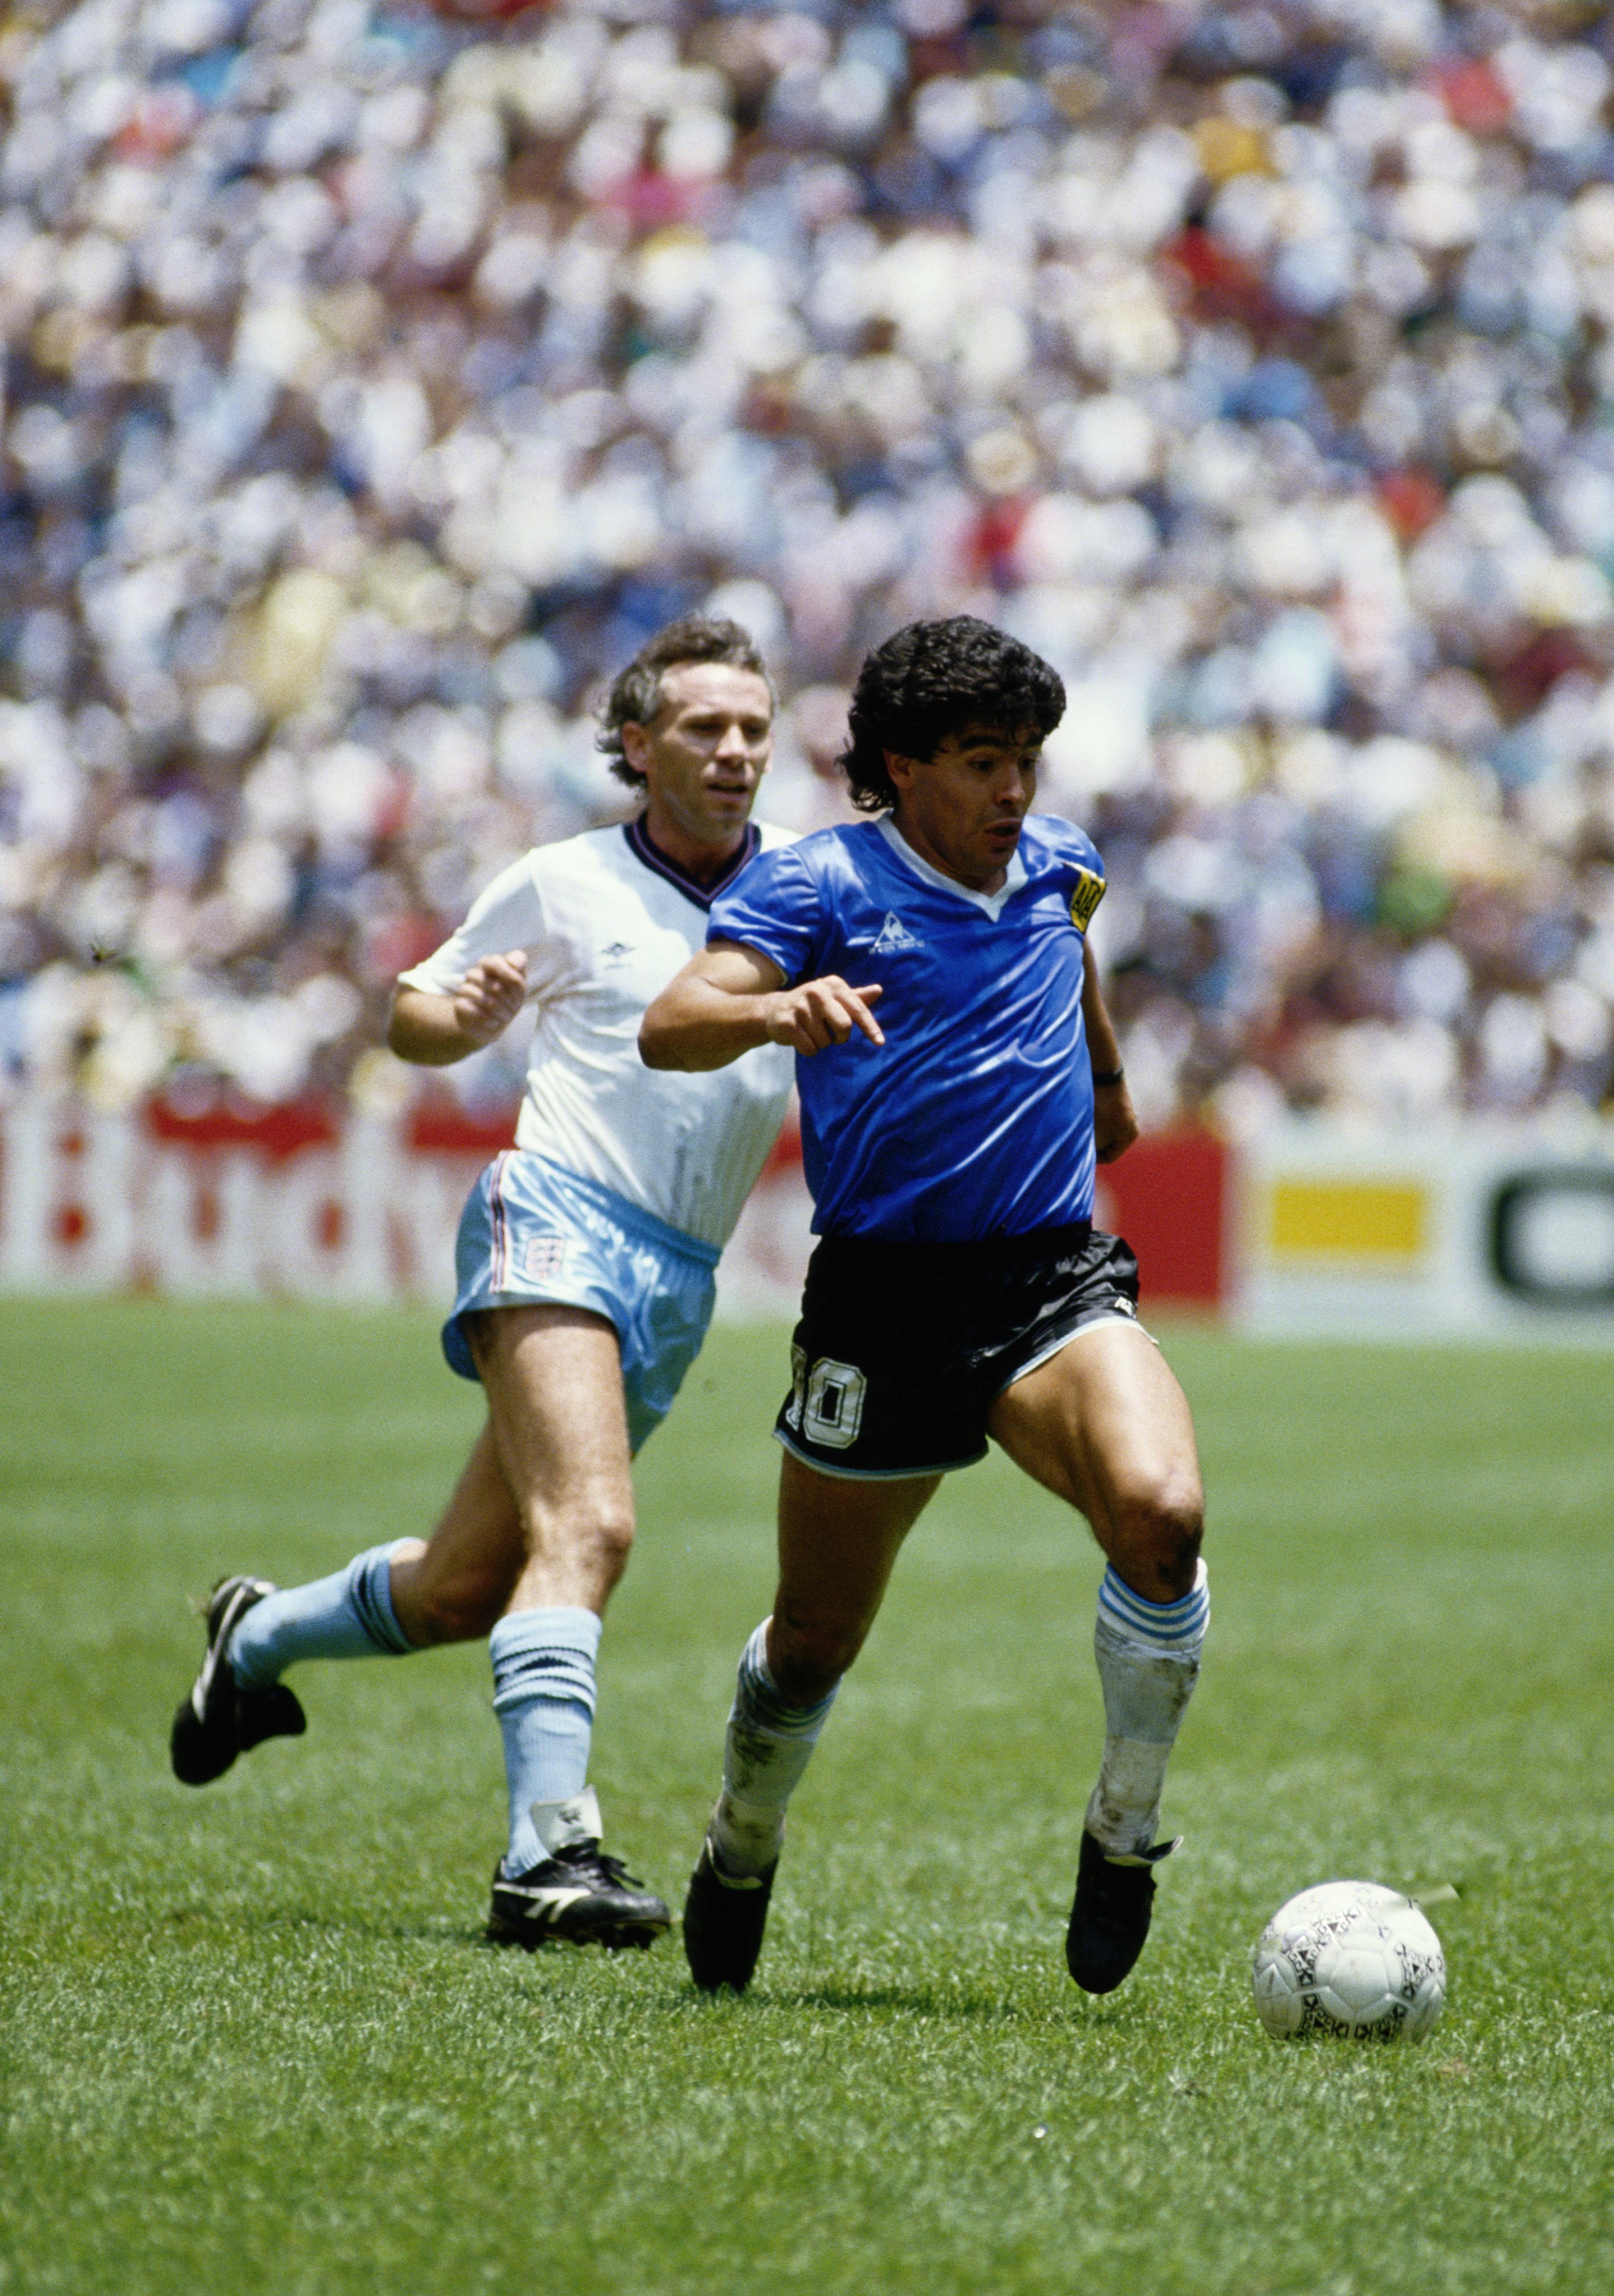 Diego Maradona of Argentina runs with the ball passed Peter Reid of England during the 1986 FIFA World Cup Quarter Final on 22 June 1986 at the Azteca Stadium in Mexico City, Mexico. Argentina defeated England 2-1 in the infamous Hand of God game. (Photo